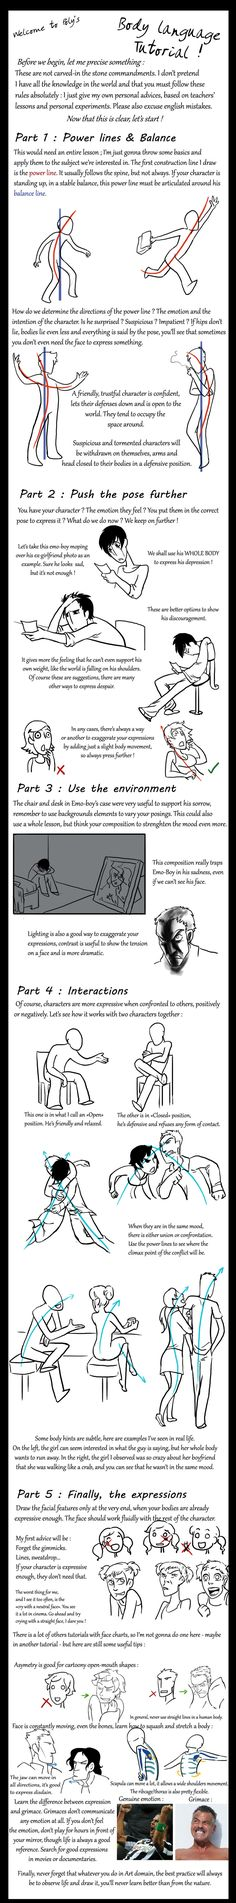 Body Language Tutorial by PolymorphicGirl.deviantart.com